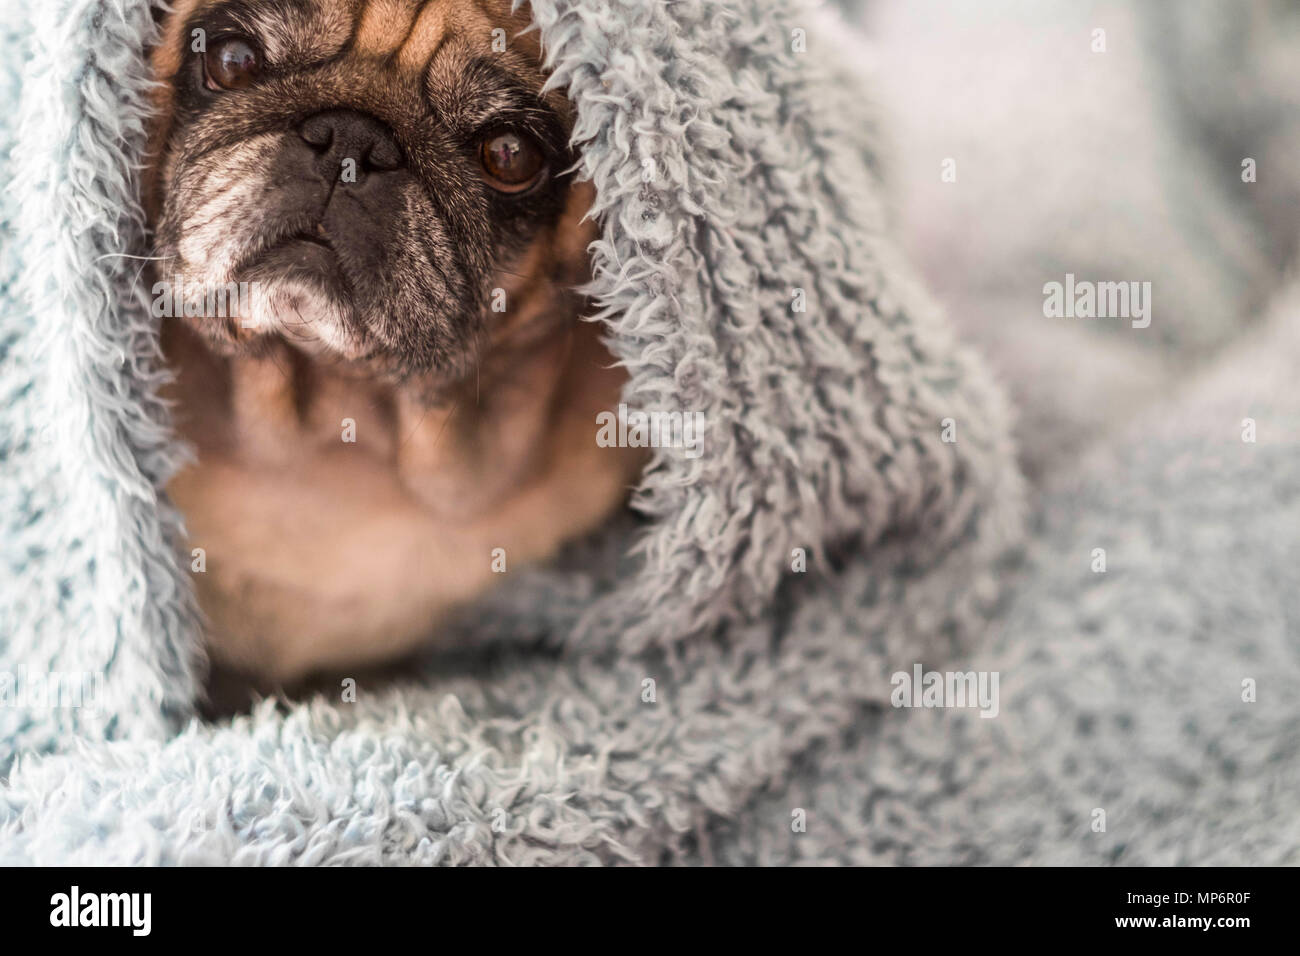 nice old pug under the sheet at home. sweet and nice to protect your home. beautiful colors blue and cyan - Stock Image